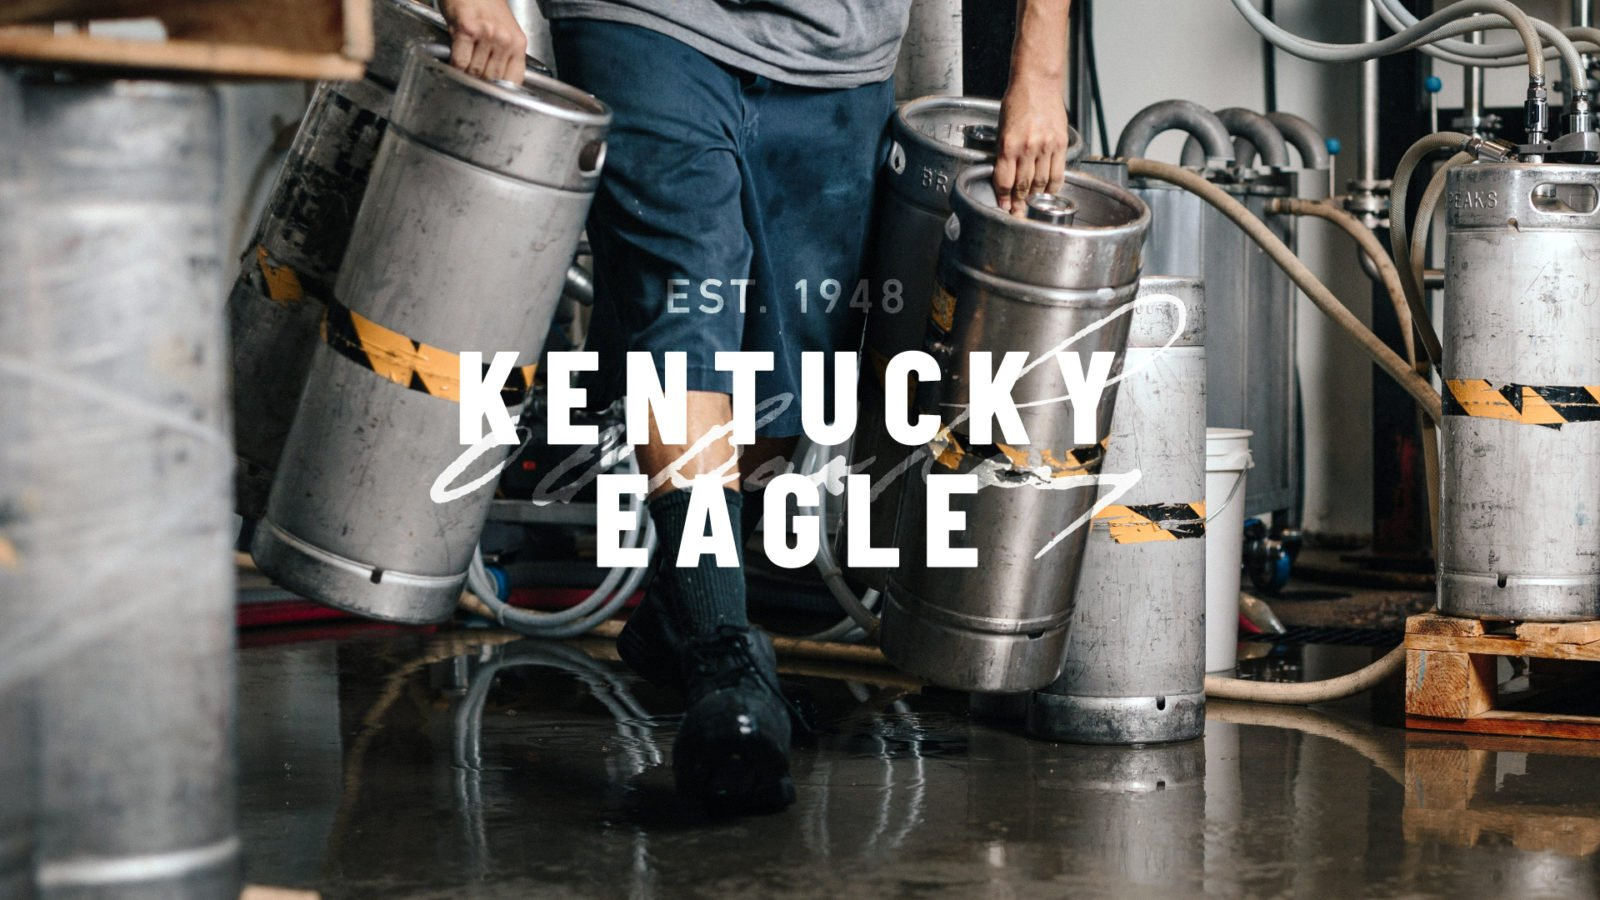 Kentucky Eagle